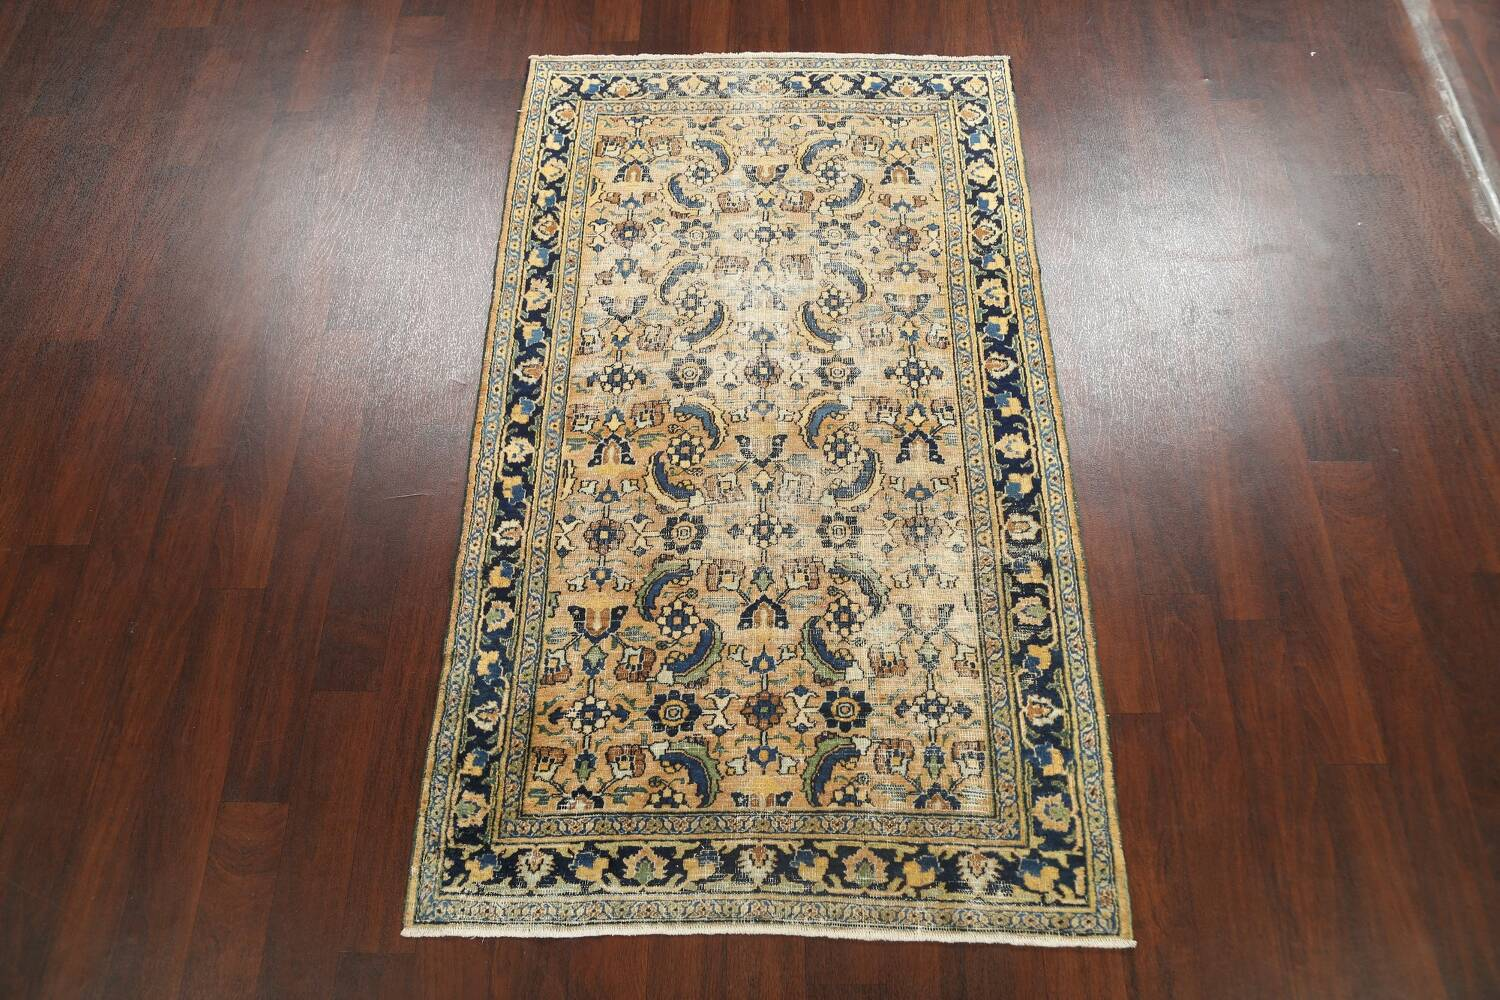 Pre-1900 Antique Vegetable Dye Sultanabad Persian Area Rug 4x7 image 2